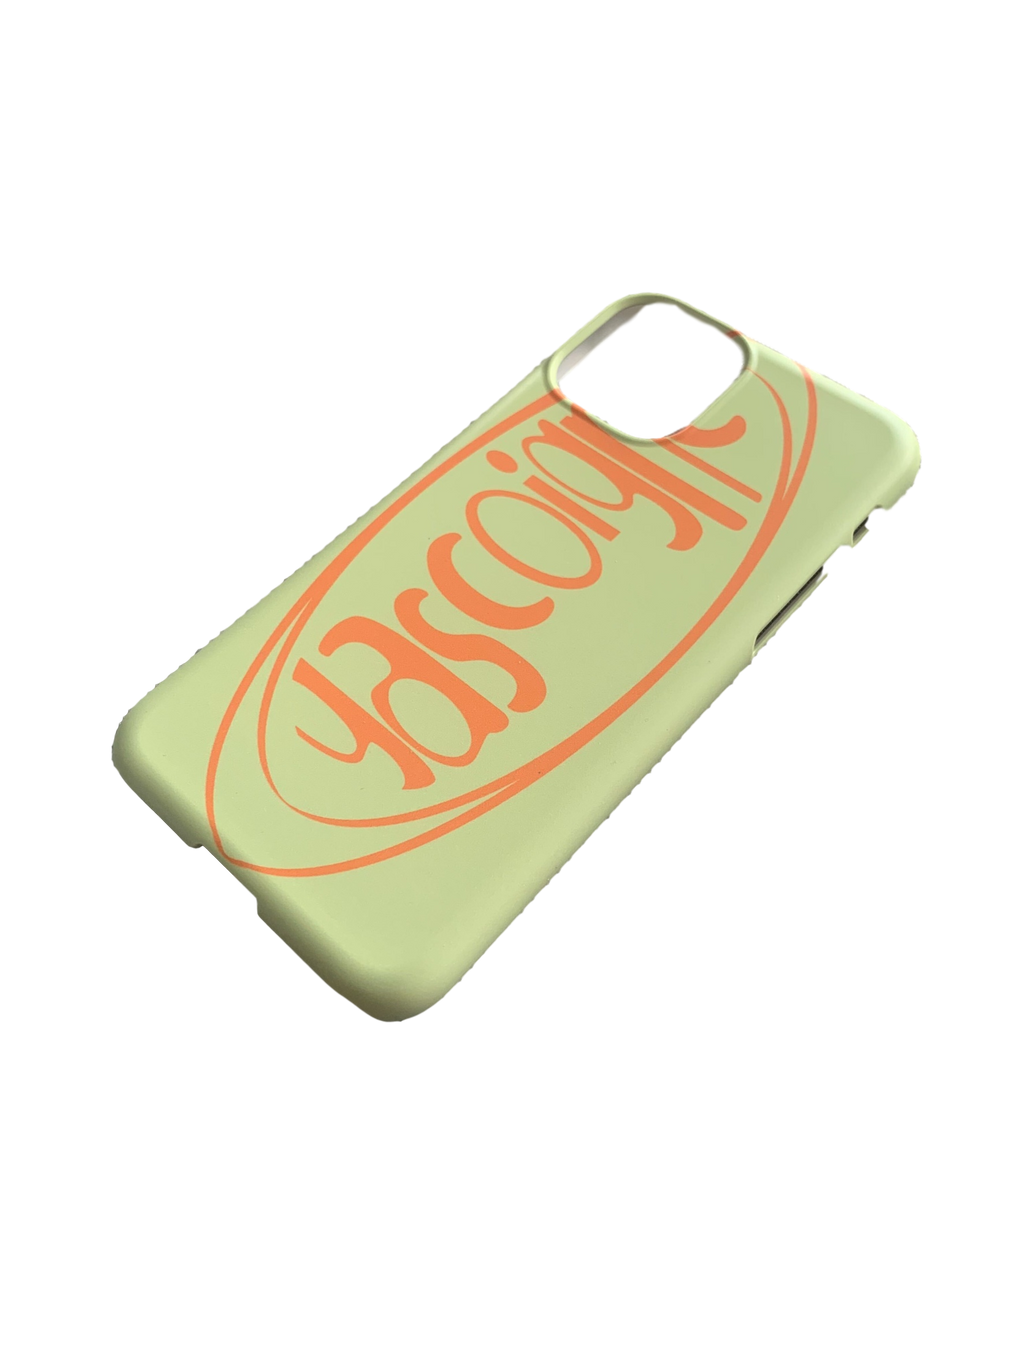 Gascoigne Logo Phone Case (Green / Orange)